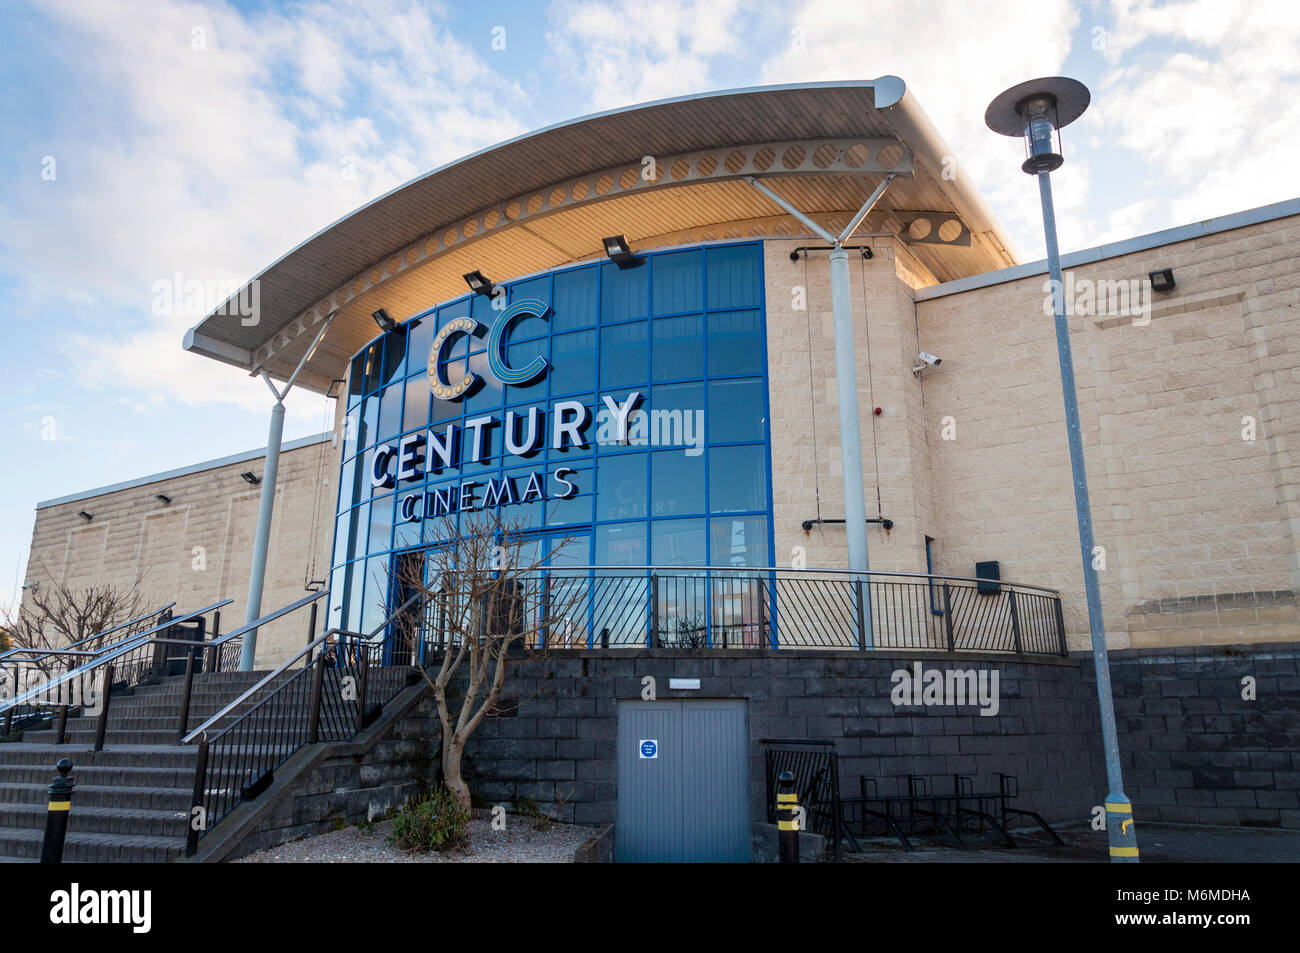 Century Cinemas complex in Letterkenny, County Donegal